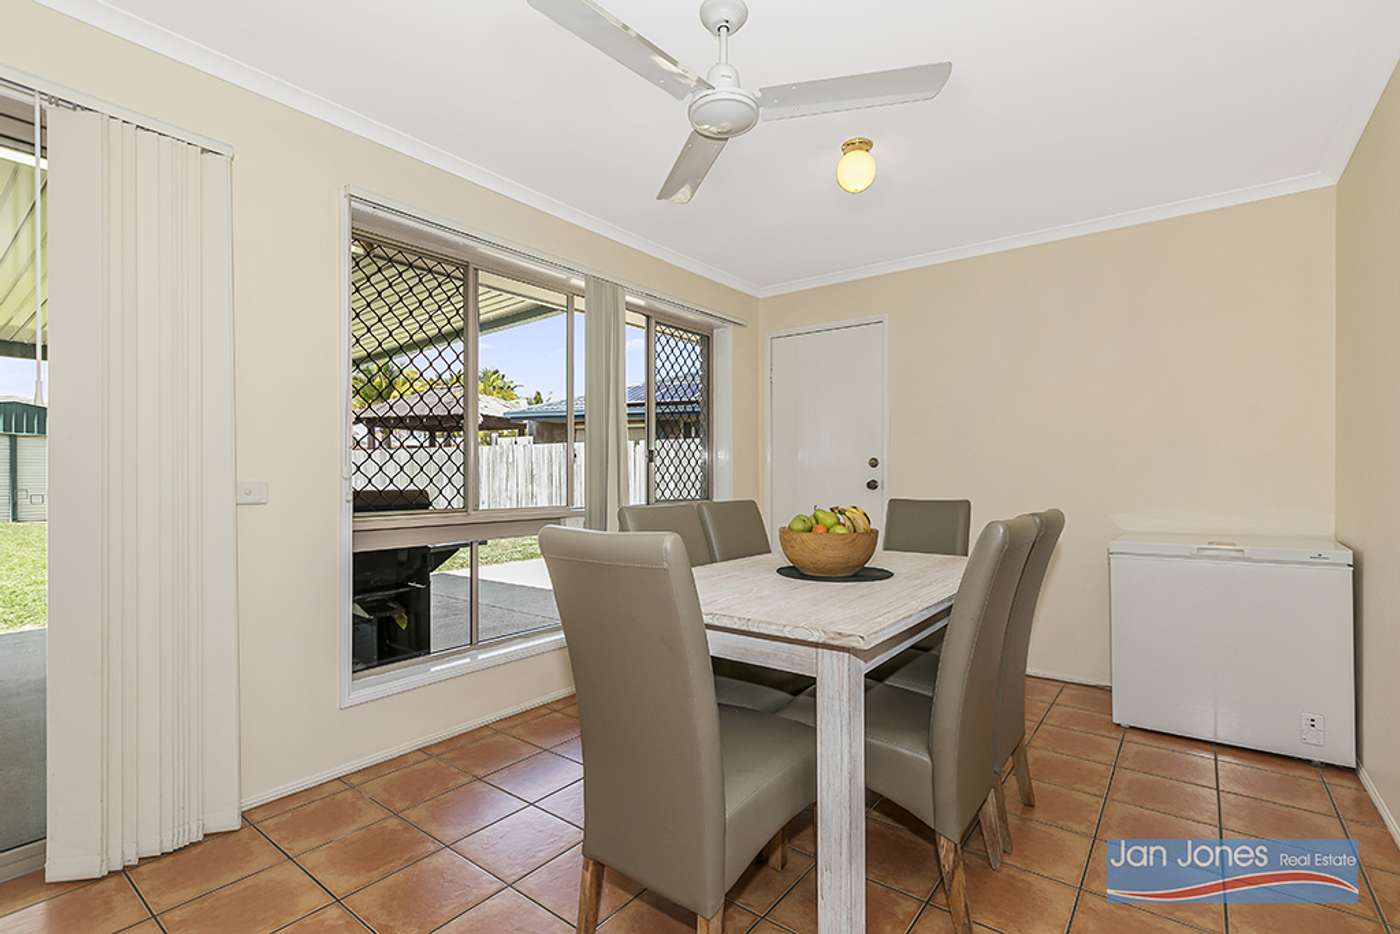 Seventh view of Homely house listing, 10 Cavalli Cres, Burpengary QLD 4505